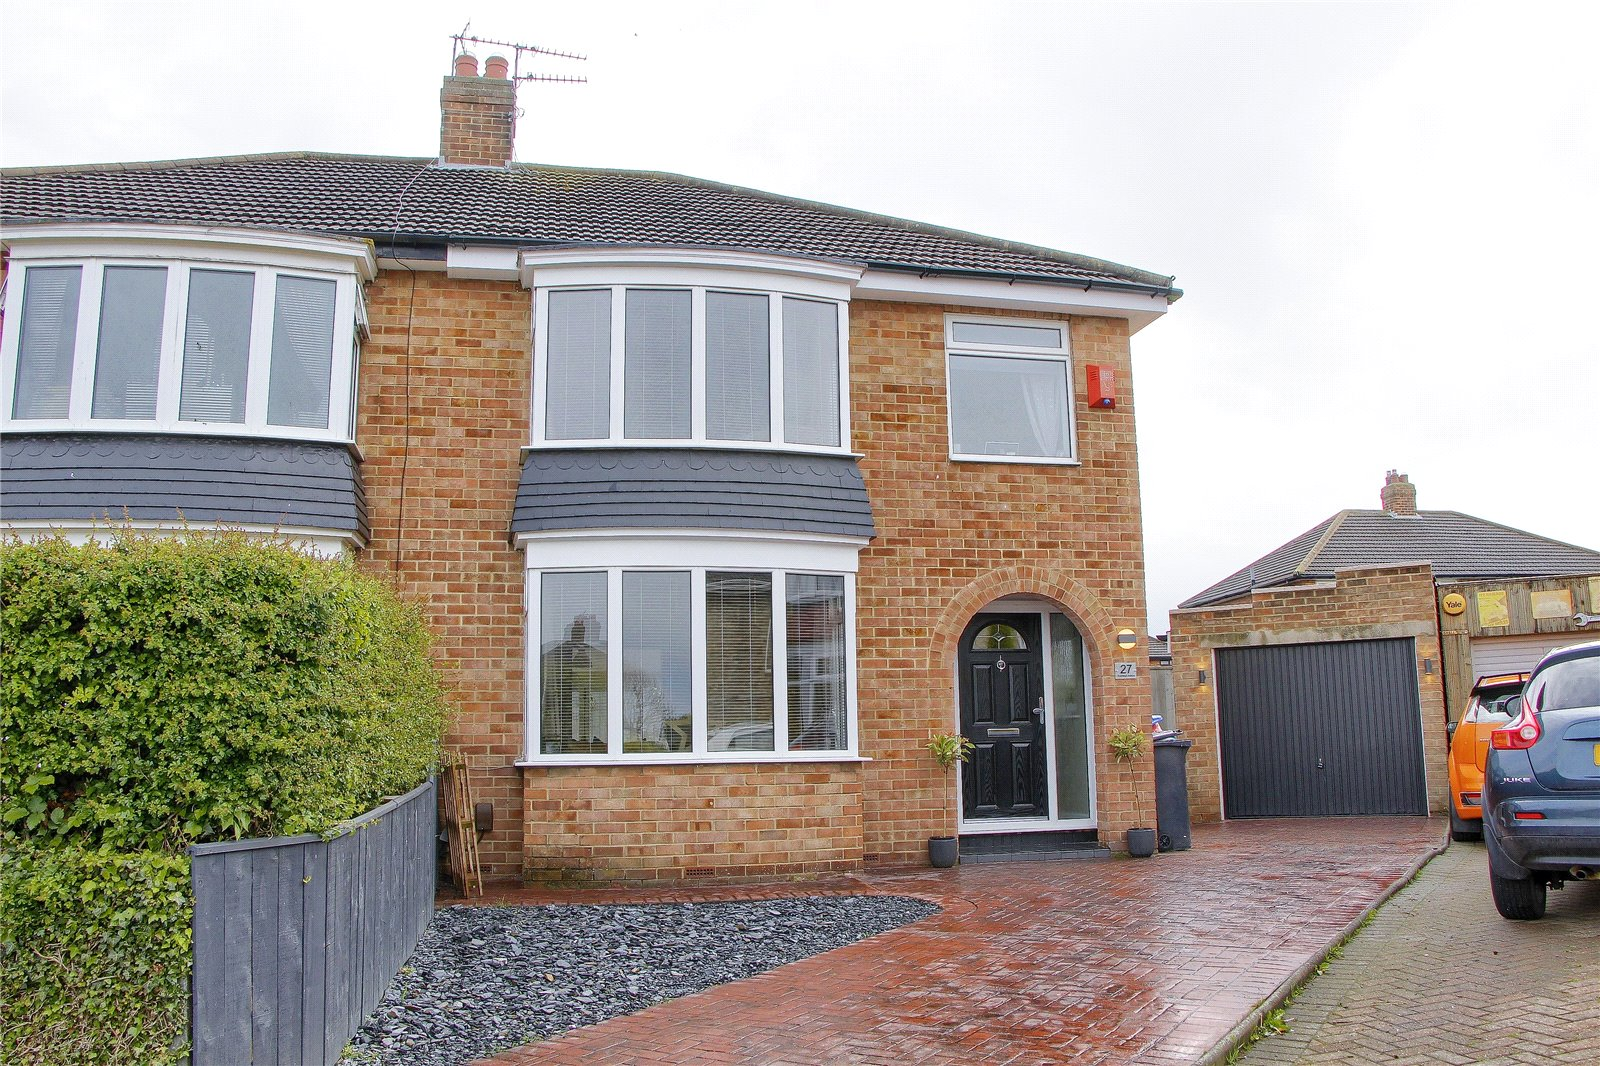 3 bed house for sale in Rushleigh Avenue, Acklam 1